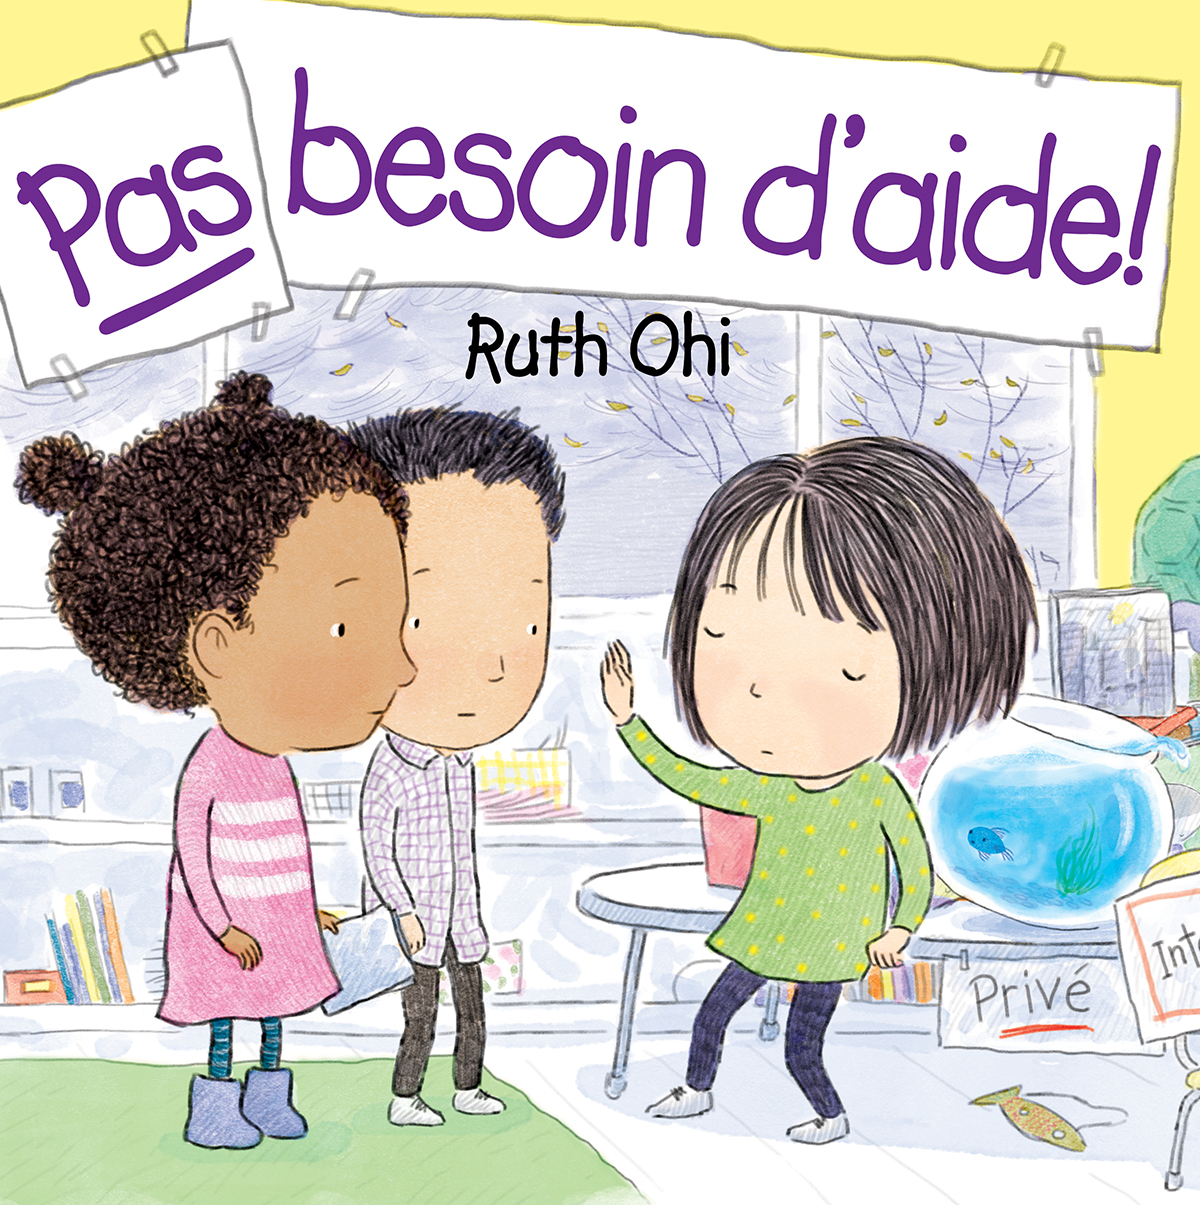 Also available in French!